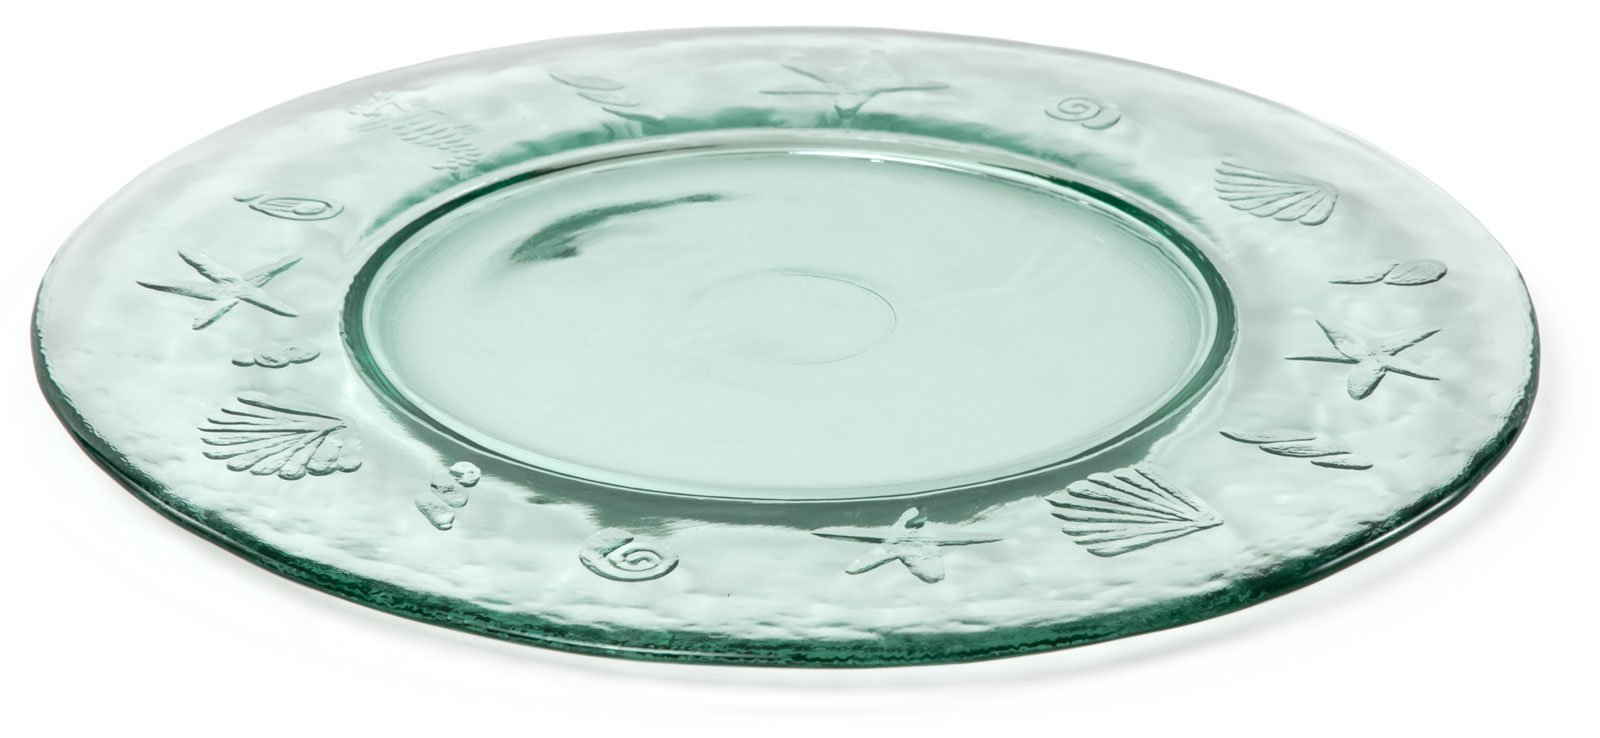 Spanish 100% Recycled Glass Ocean Sea Life Charger Plate, Set of 2 - 12.75''D